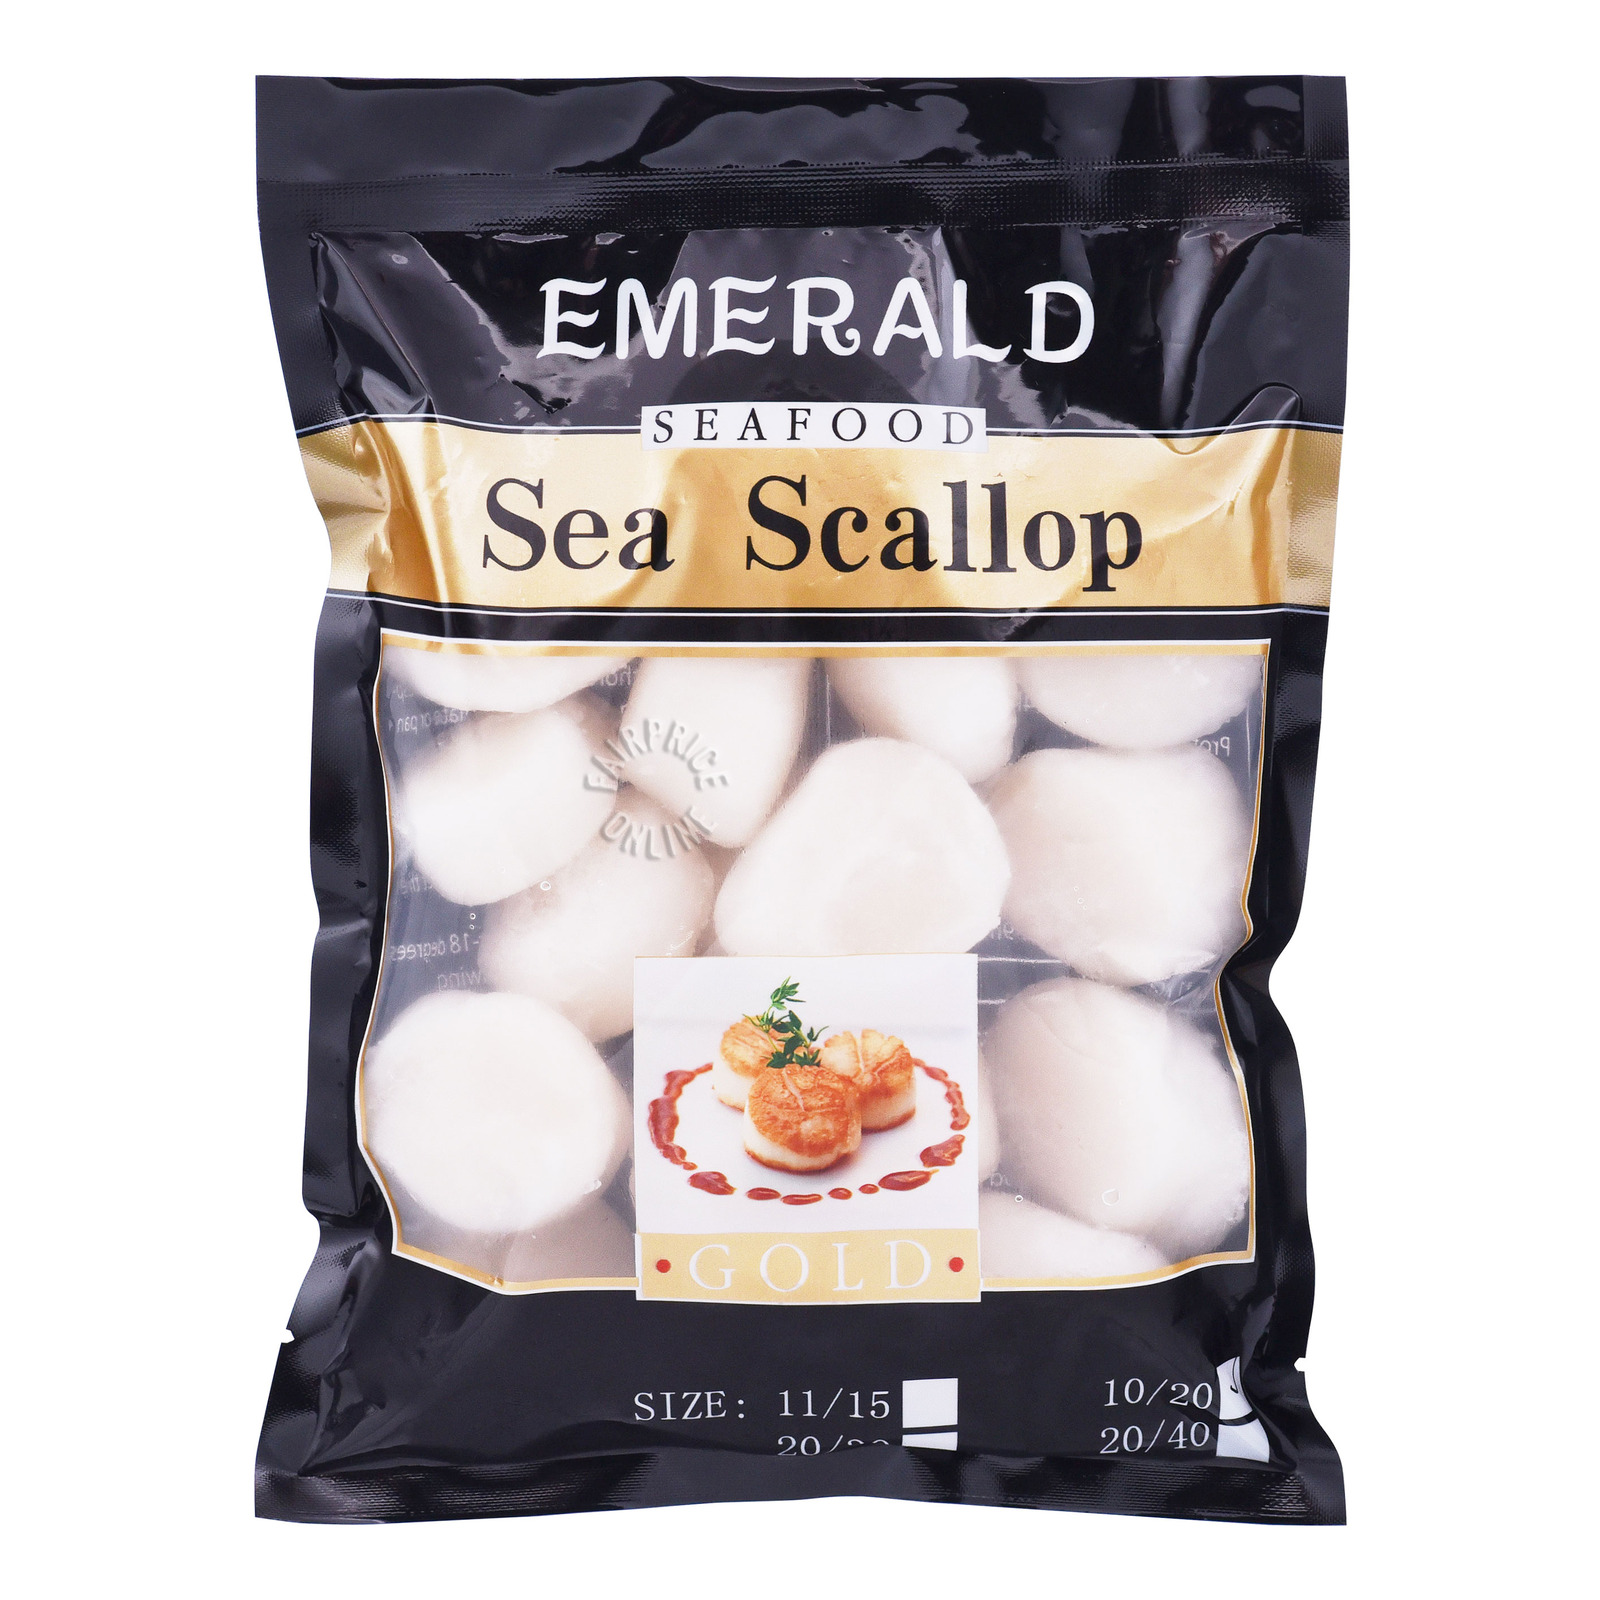 Emerald Seafood Frozen Sea Scallops